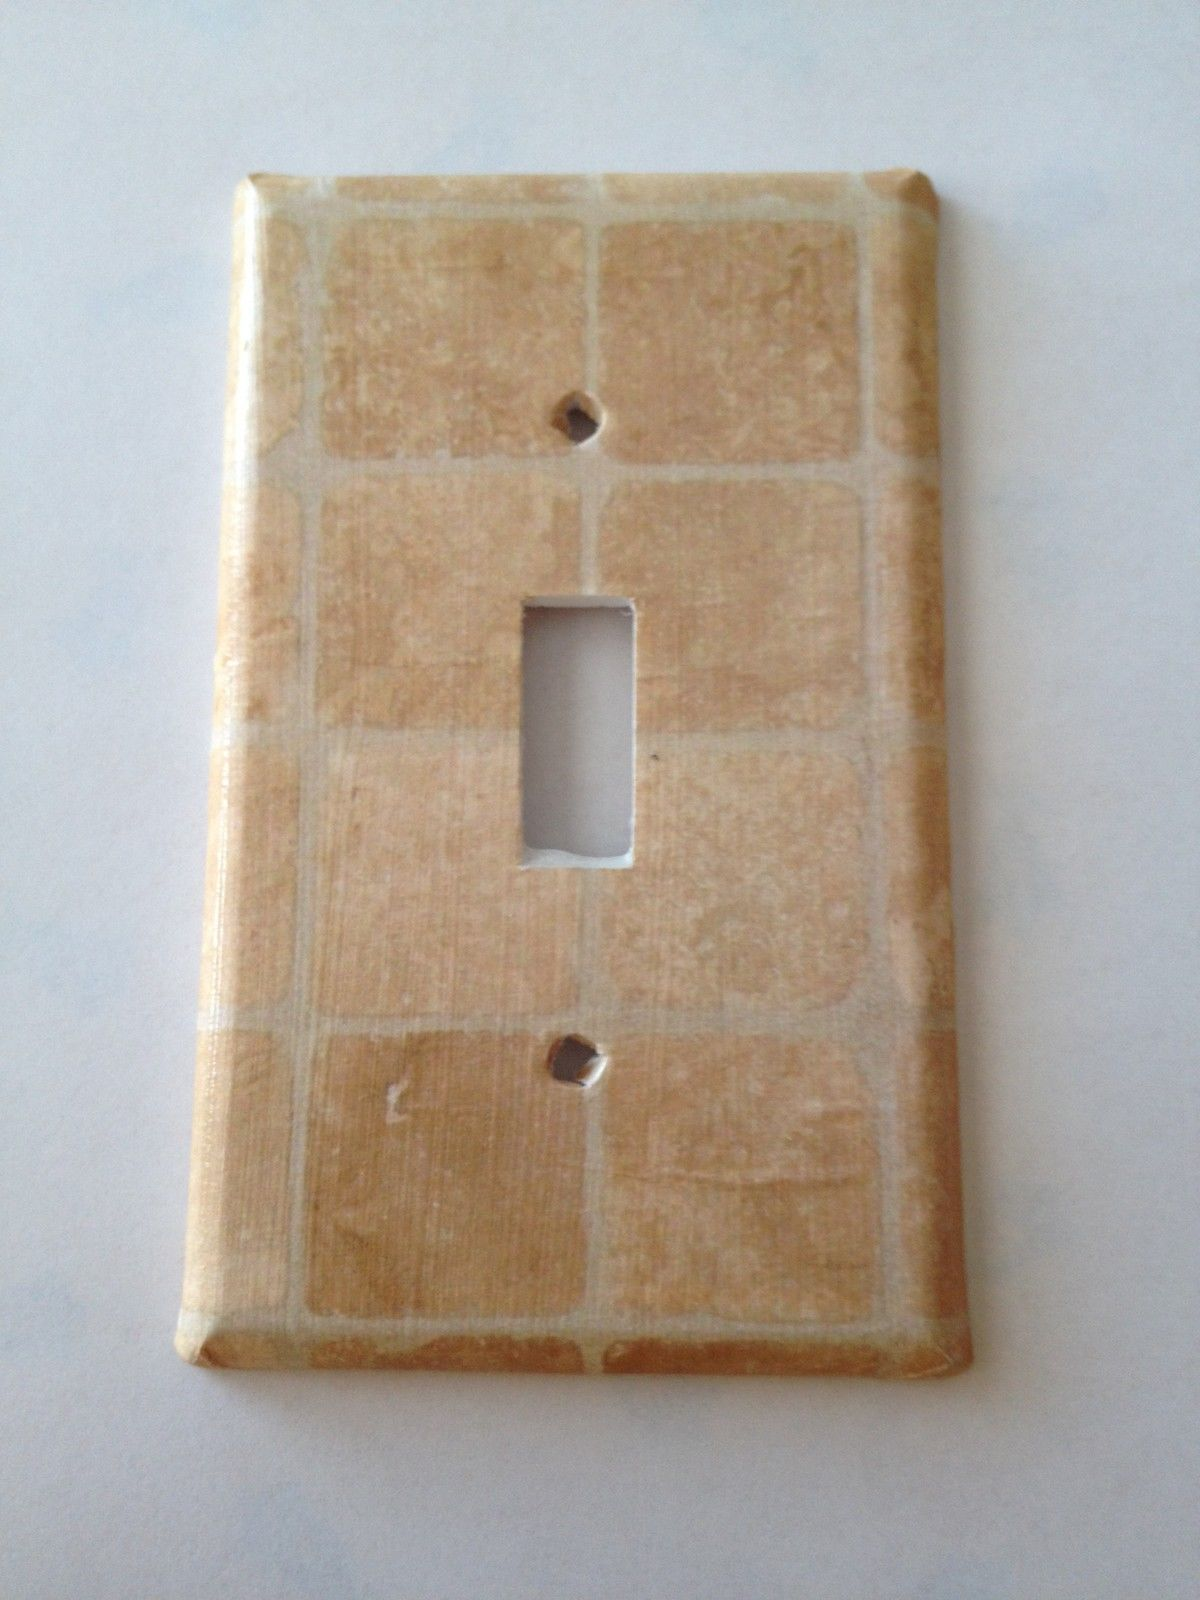 Italian Stone Tiles Light Switch Covers Home Decor Outlet